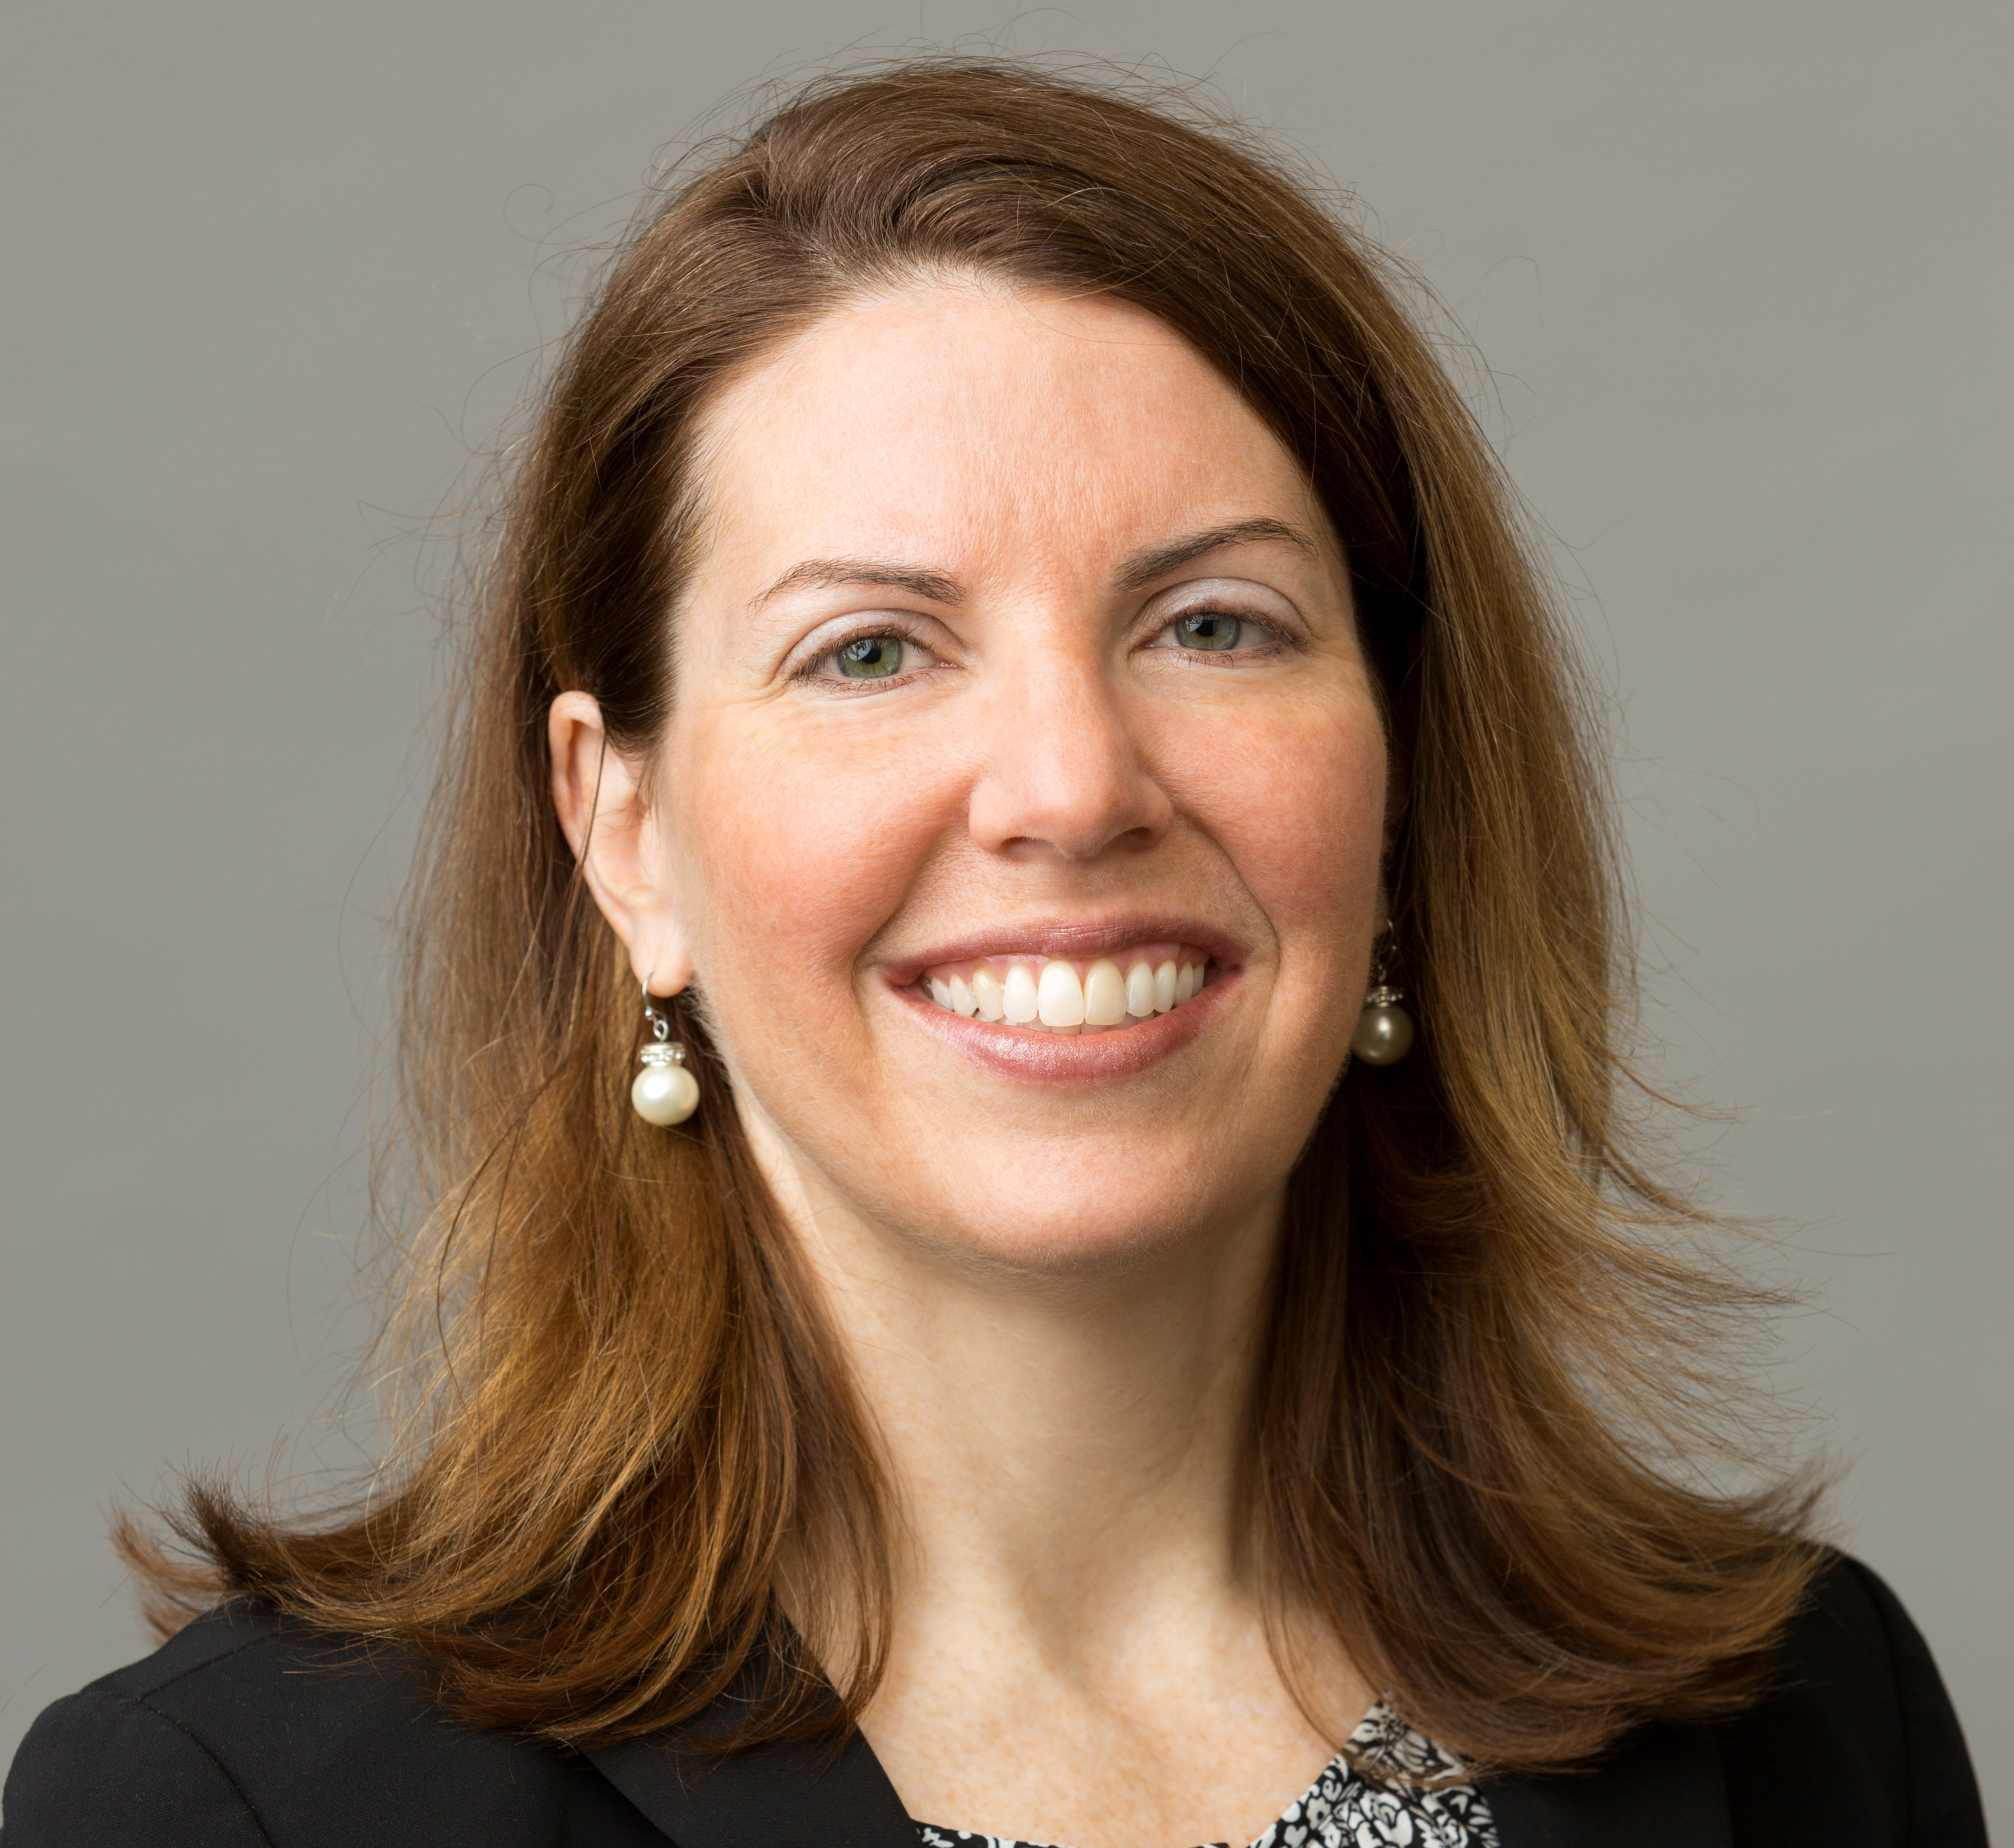 Marshall Gerstein partner Katherine Neville has been recognized among the 2016 Women Worth Watching by Profiles in Diversity Journal.(Photo: Business Wire)